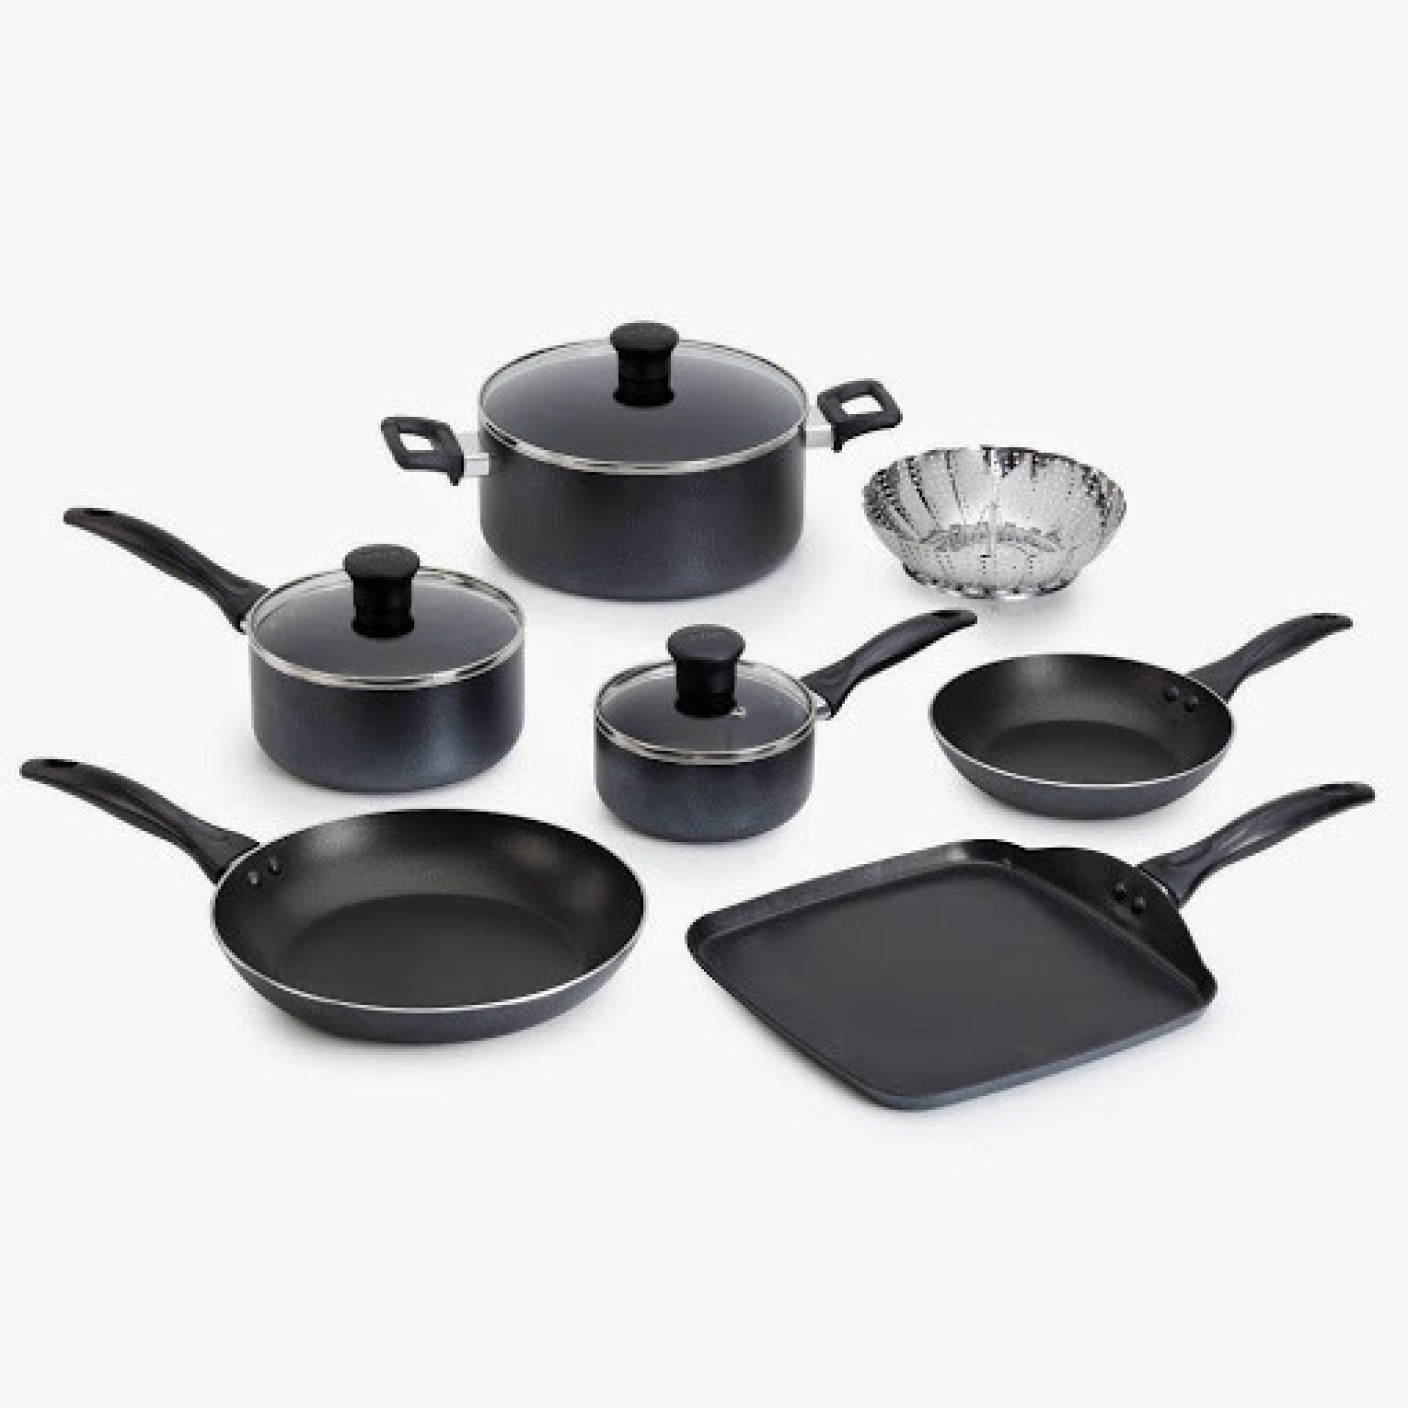 tefal delight cookware set price in india buy tefal delight cookware set online at. Black Bedroom Furniture Sets. Home Design Ideas